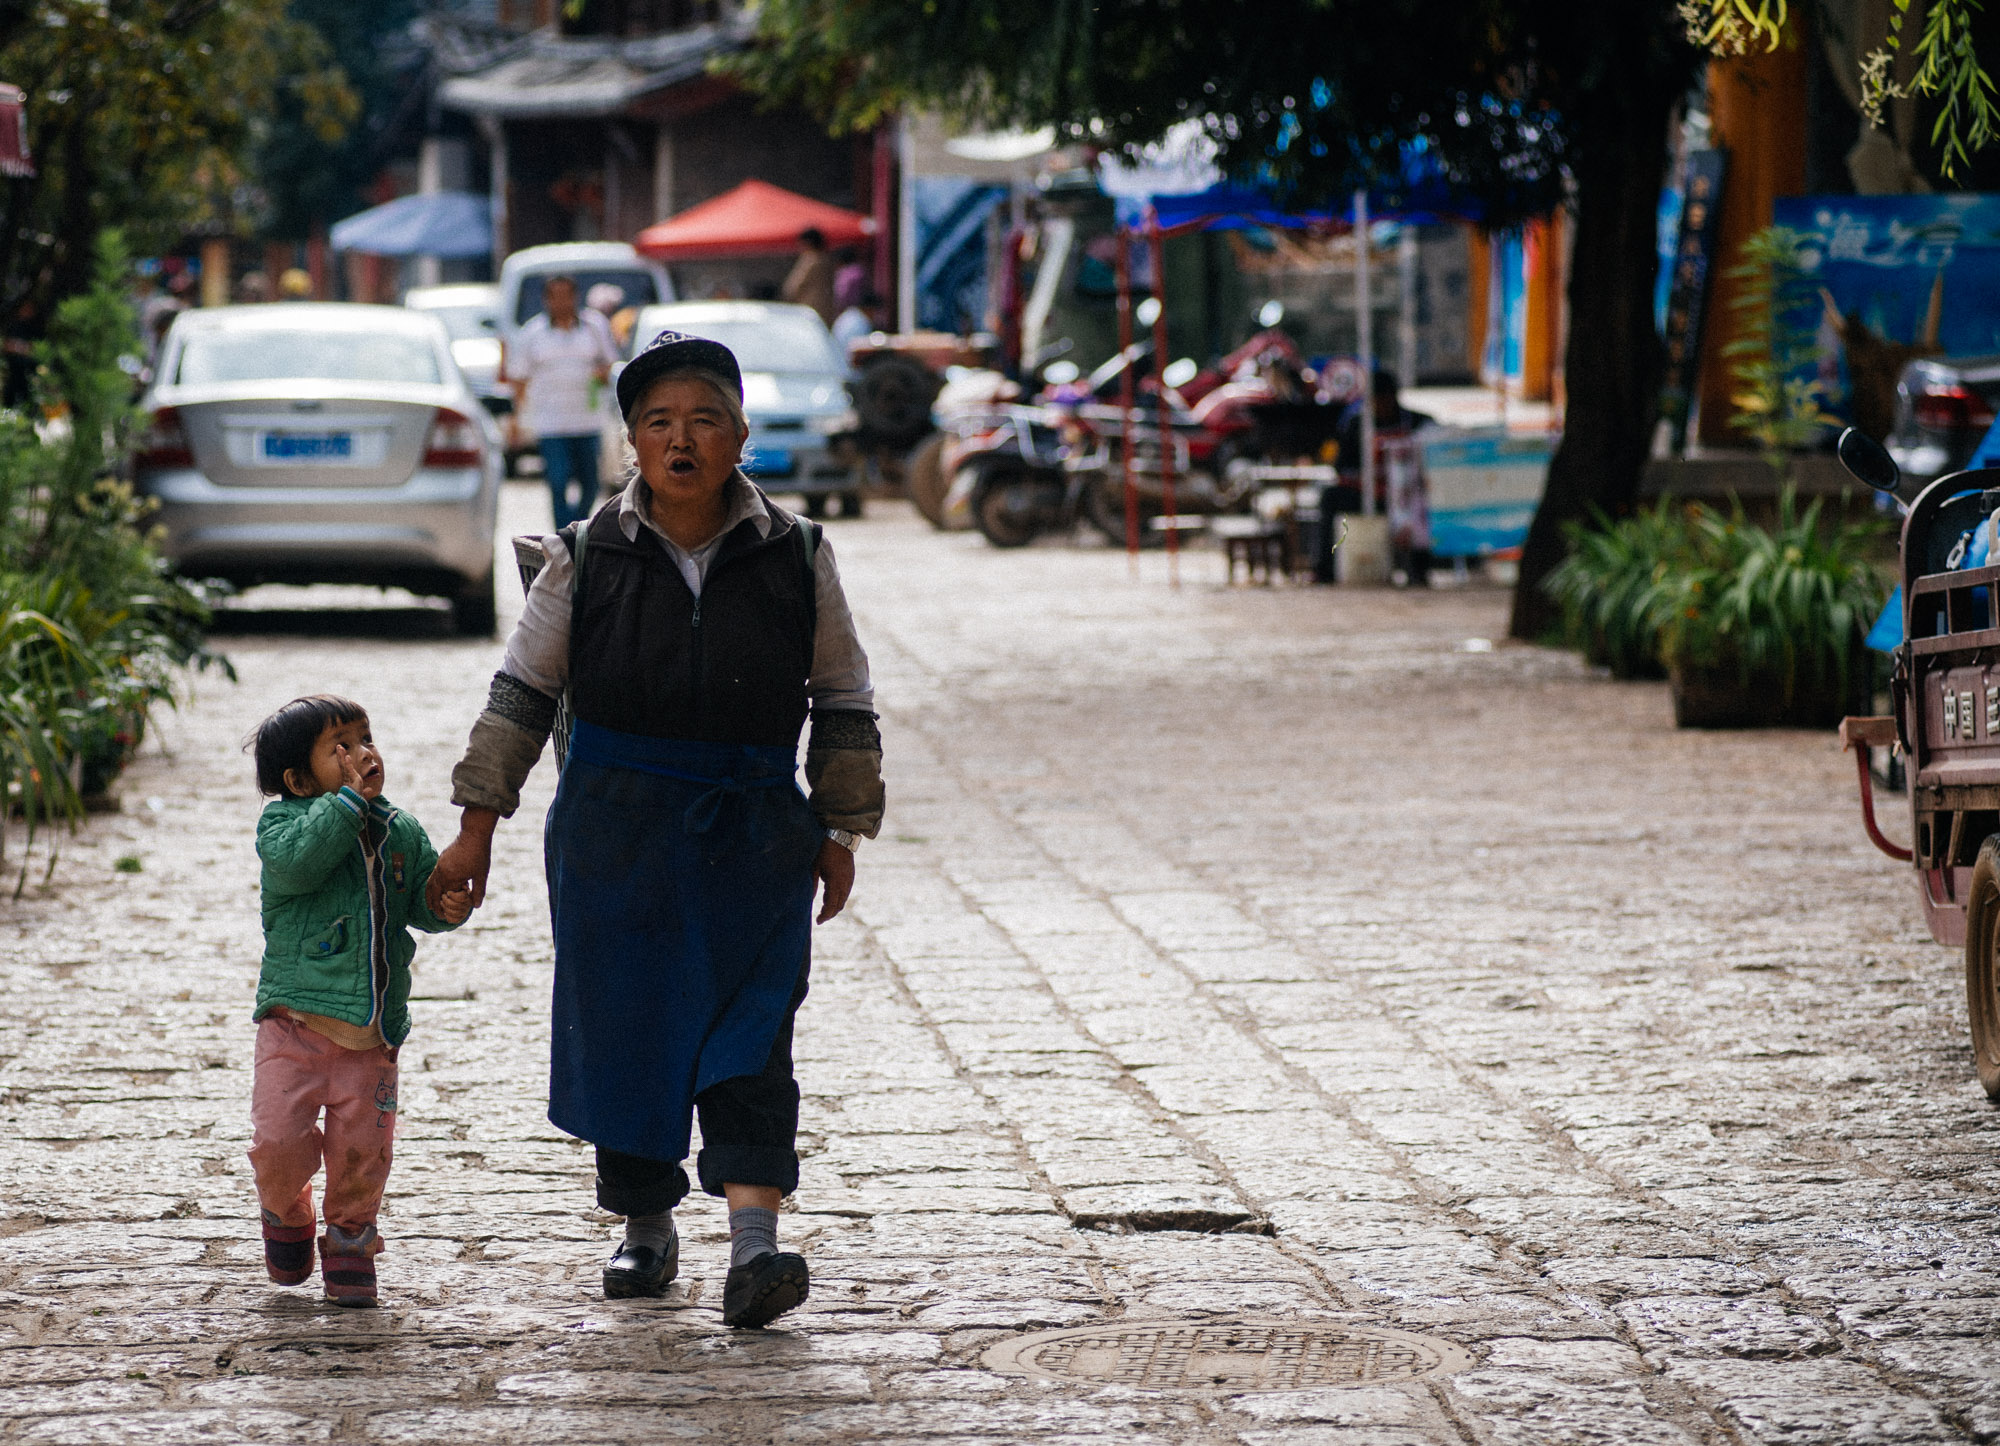 As most places in China, grandmothers take care of children while the parents go to bigger cities for better jobs and send money home.